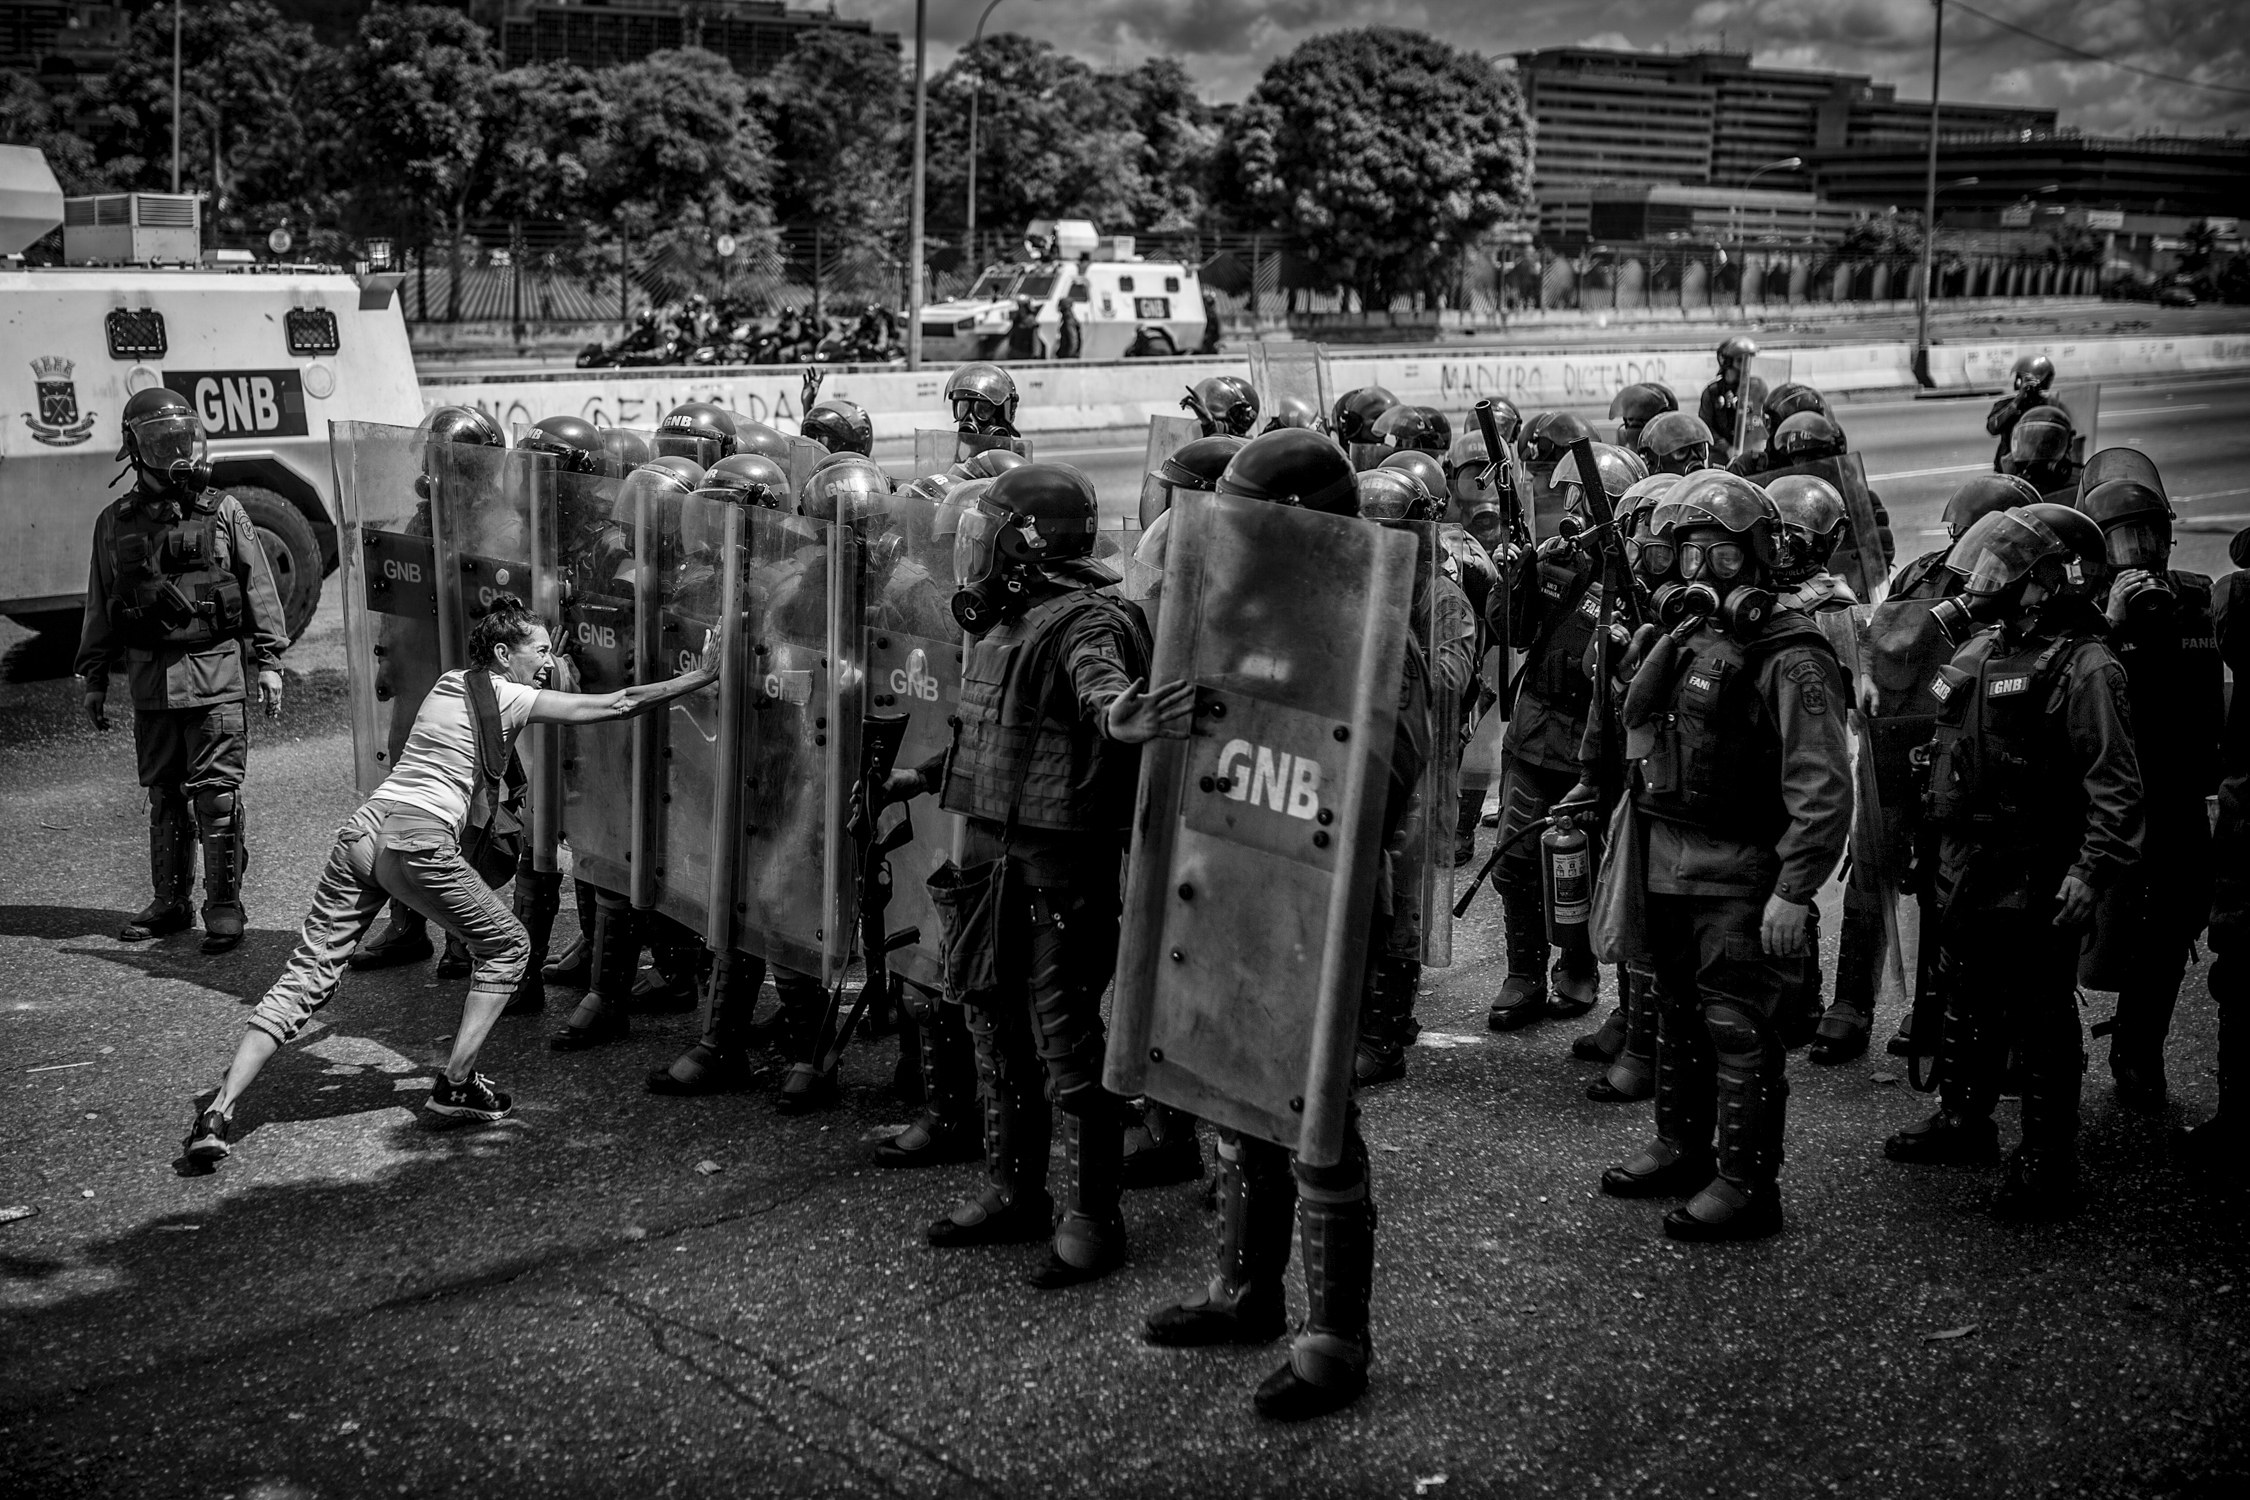 A woman tries to stop National Guard anti-riot officers during an anti-government protest, in 2017.   Photographs by Alejandro Cegarra .